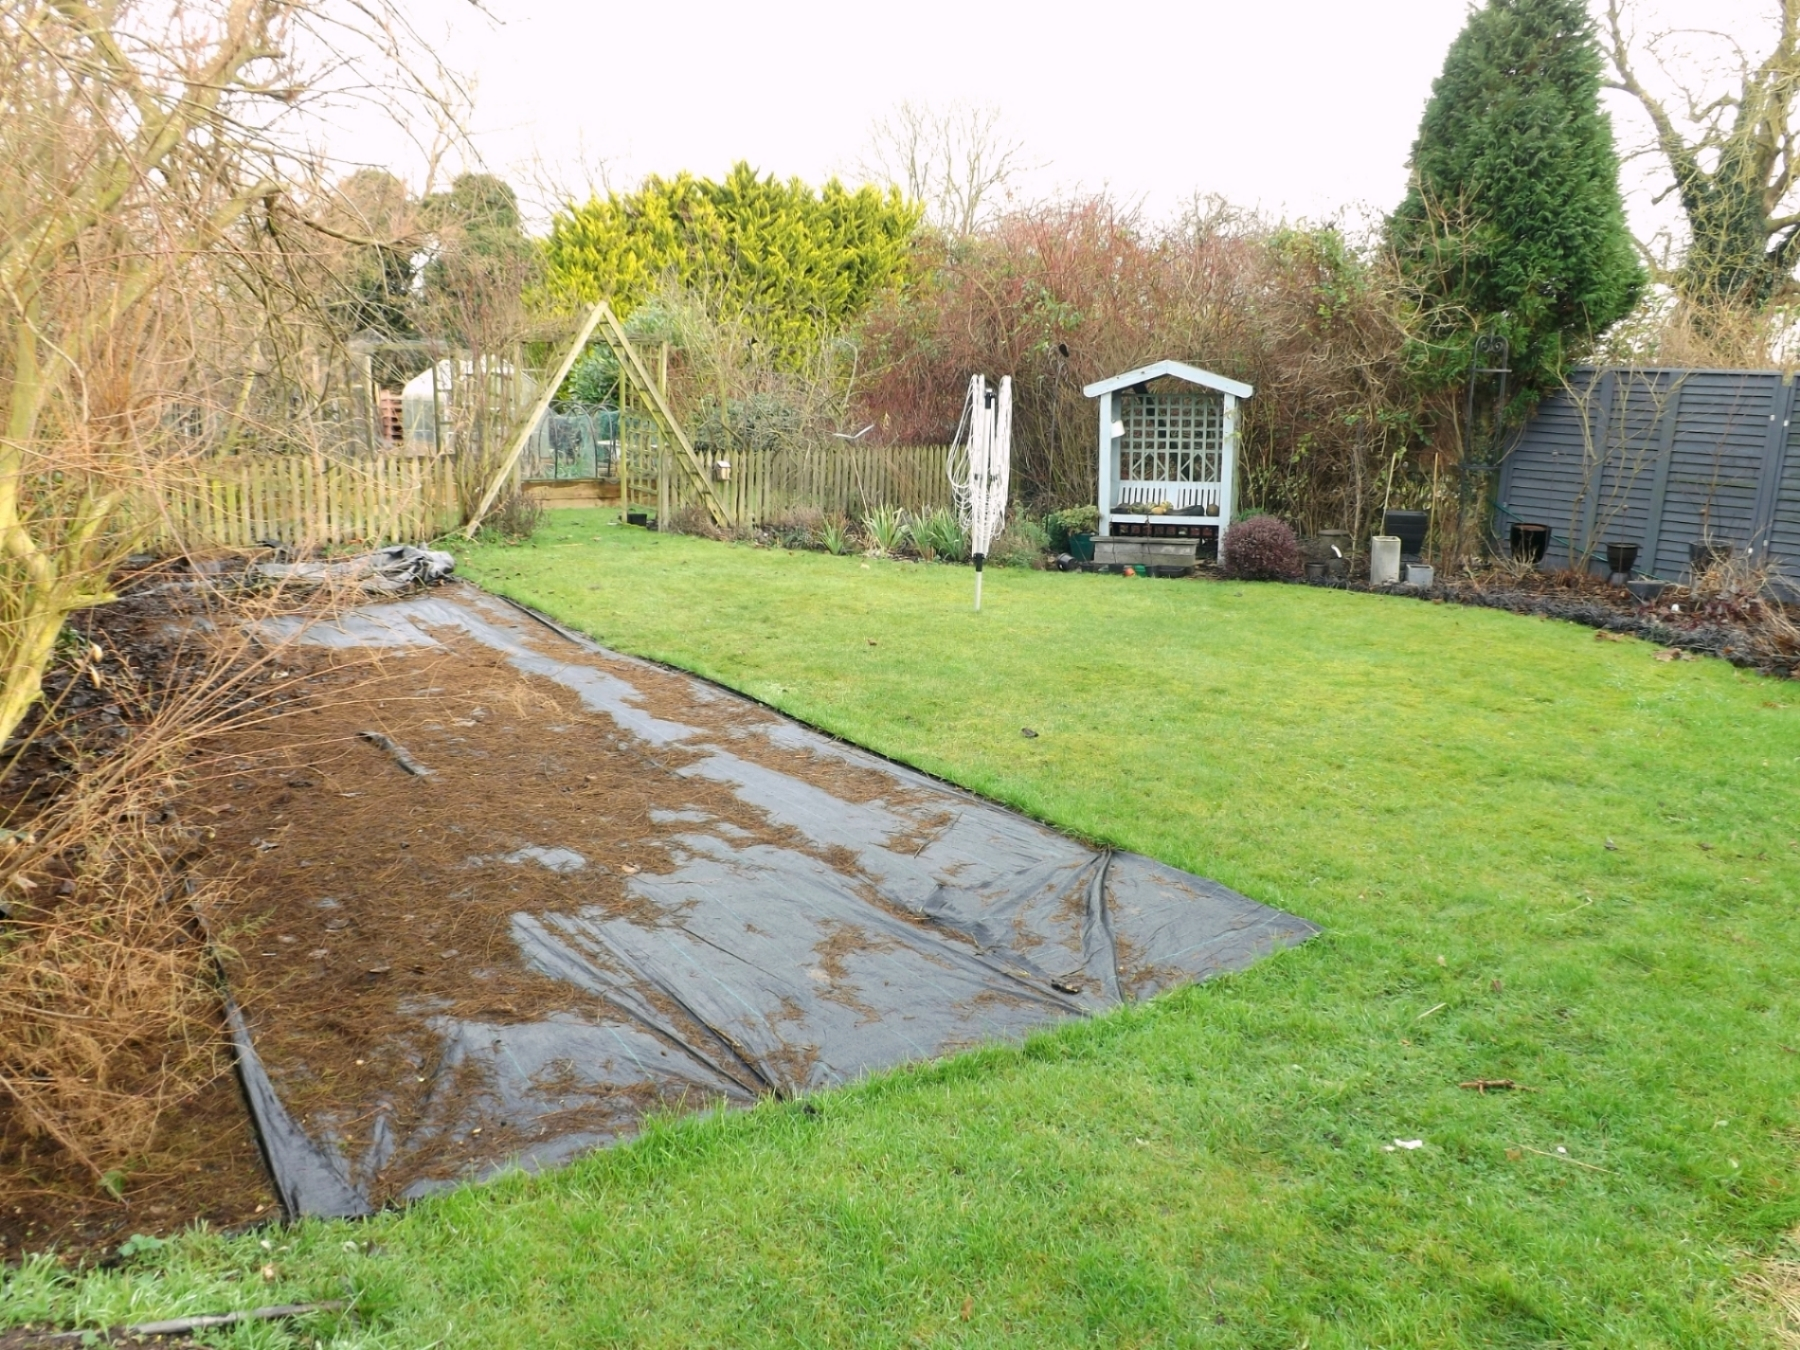 All three beds in the middle garden